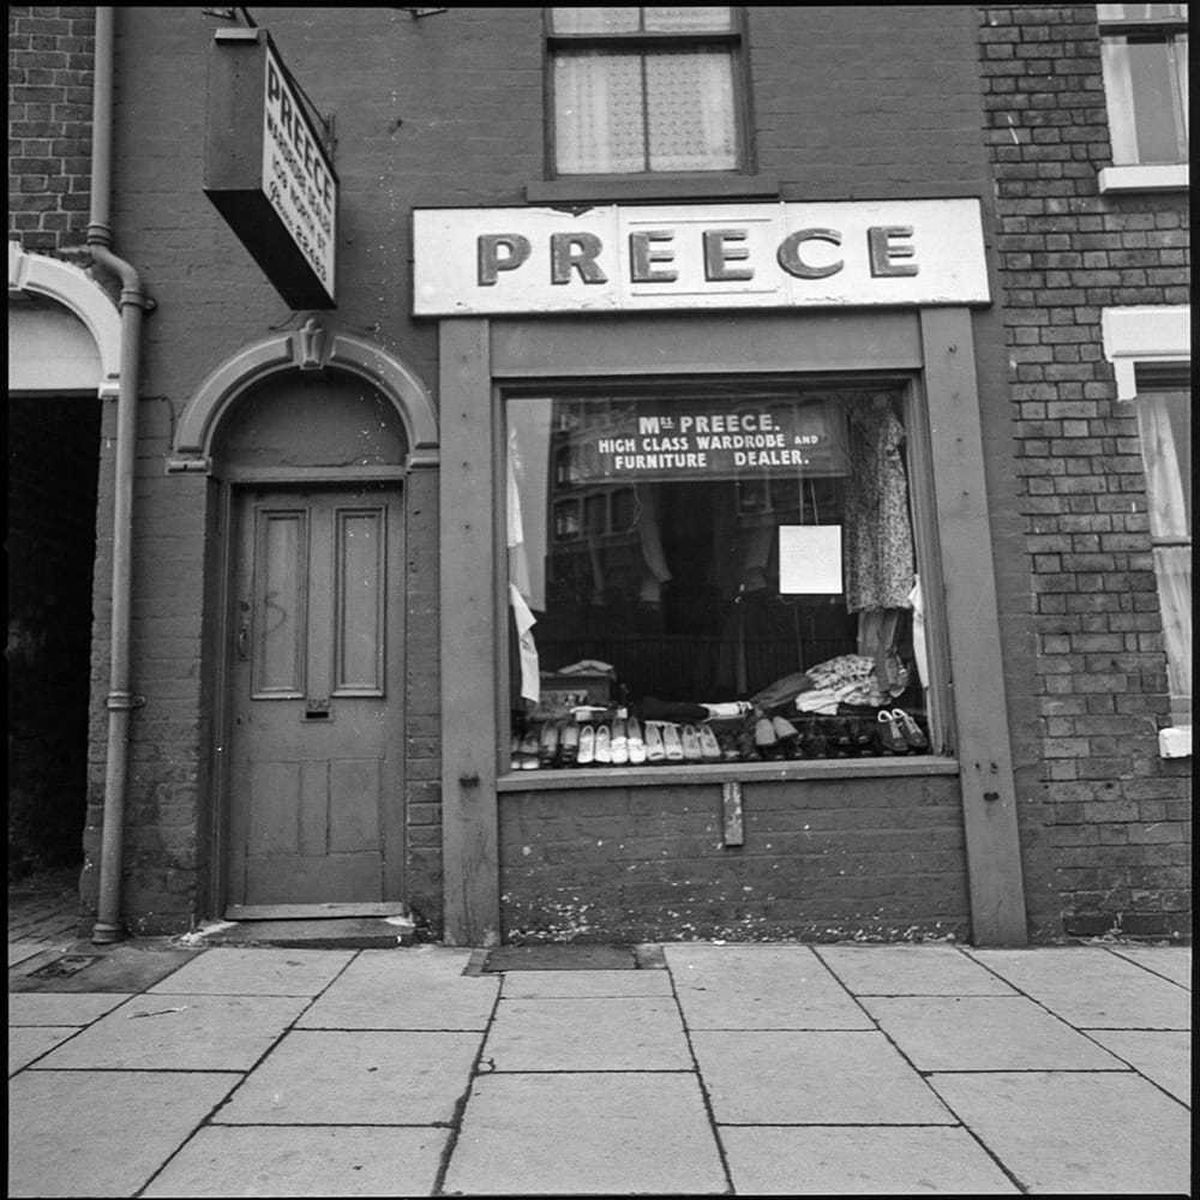 Preece's second-hand shop, popular for its books, was opposite The Feathers pub, which is now a university building